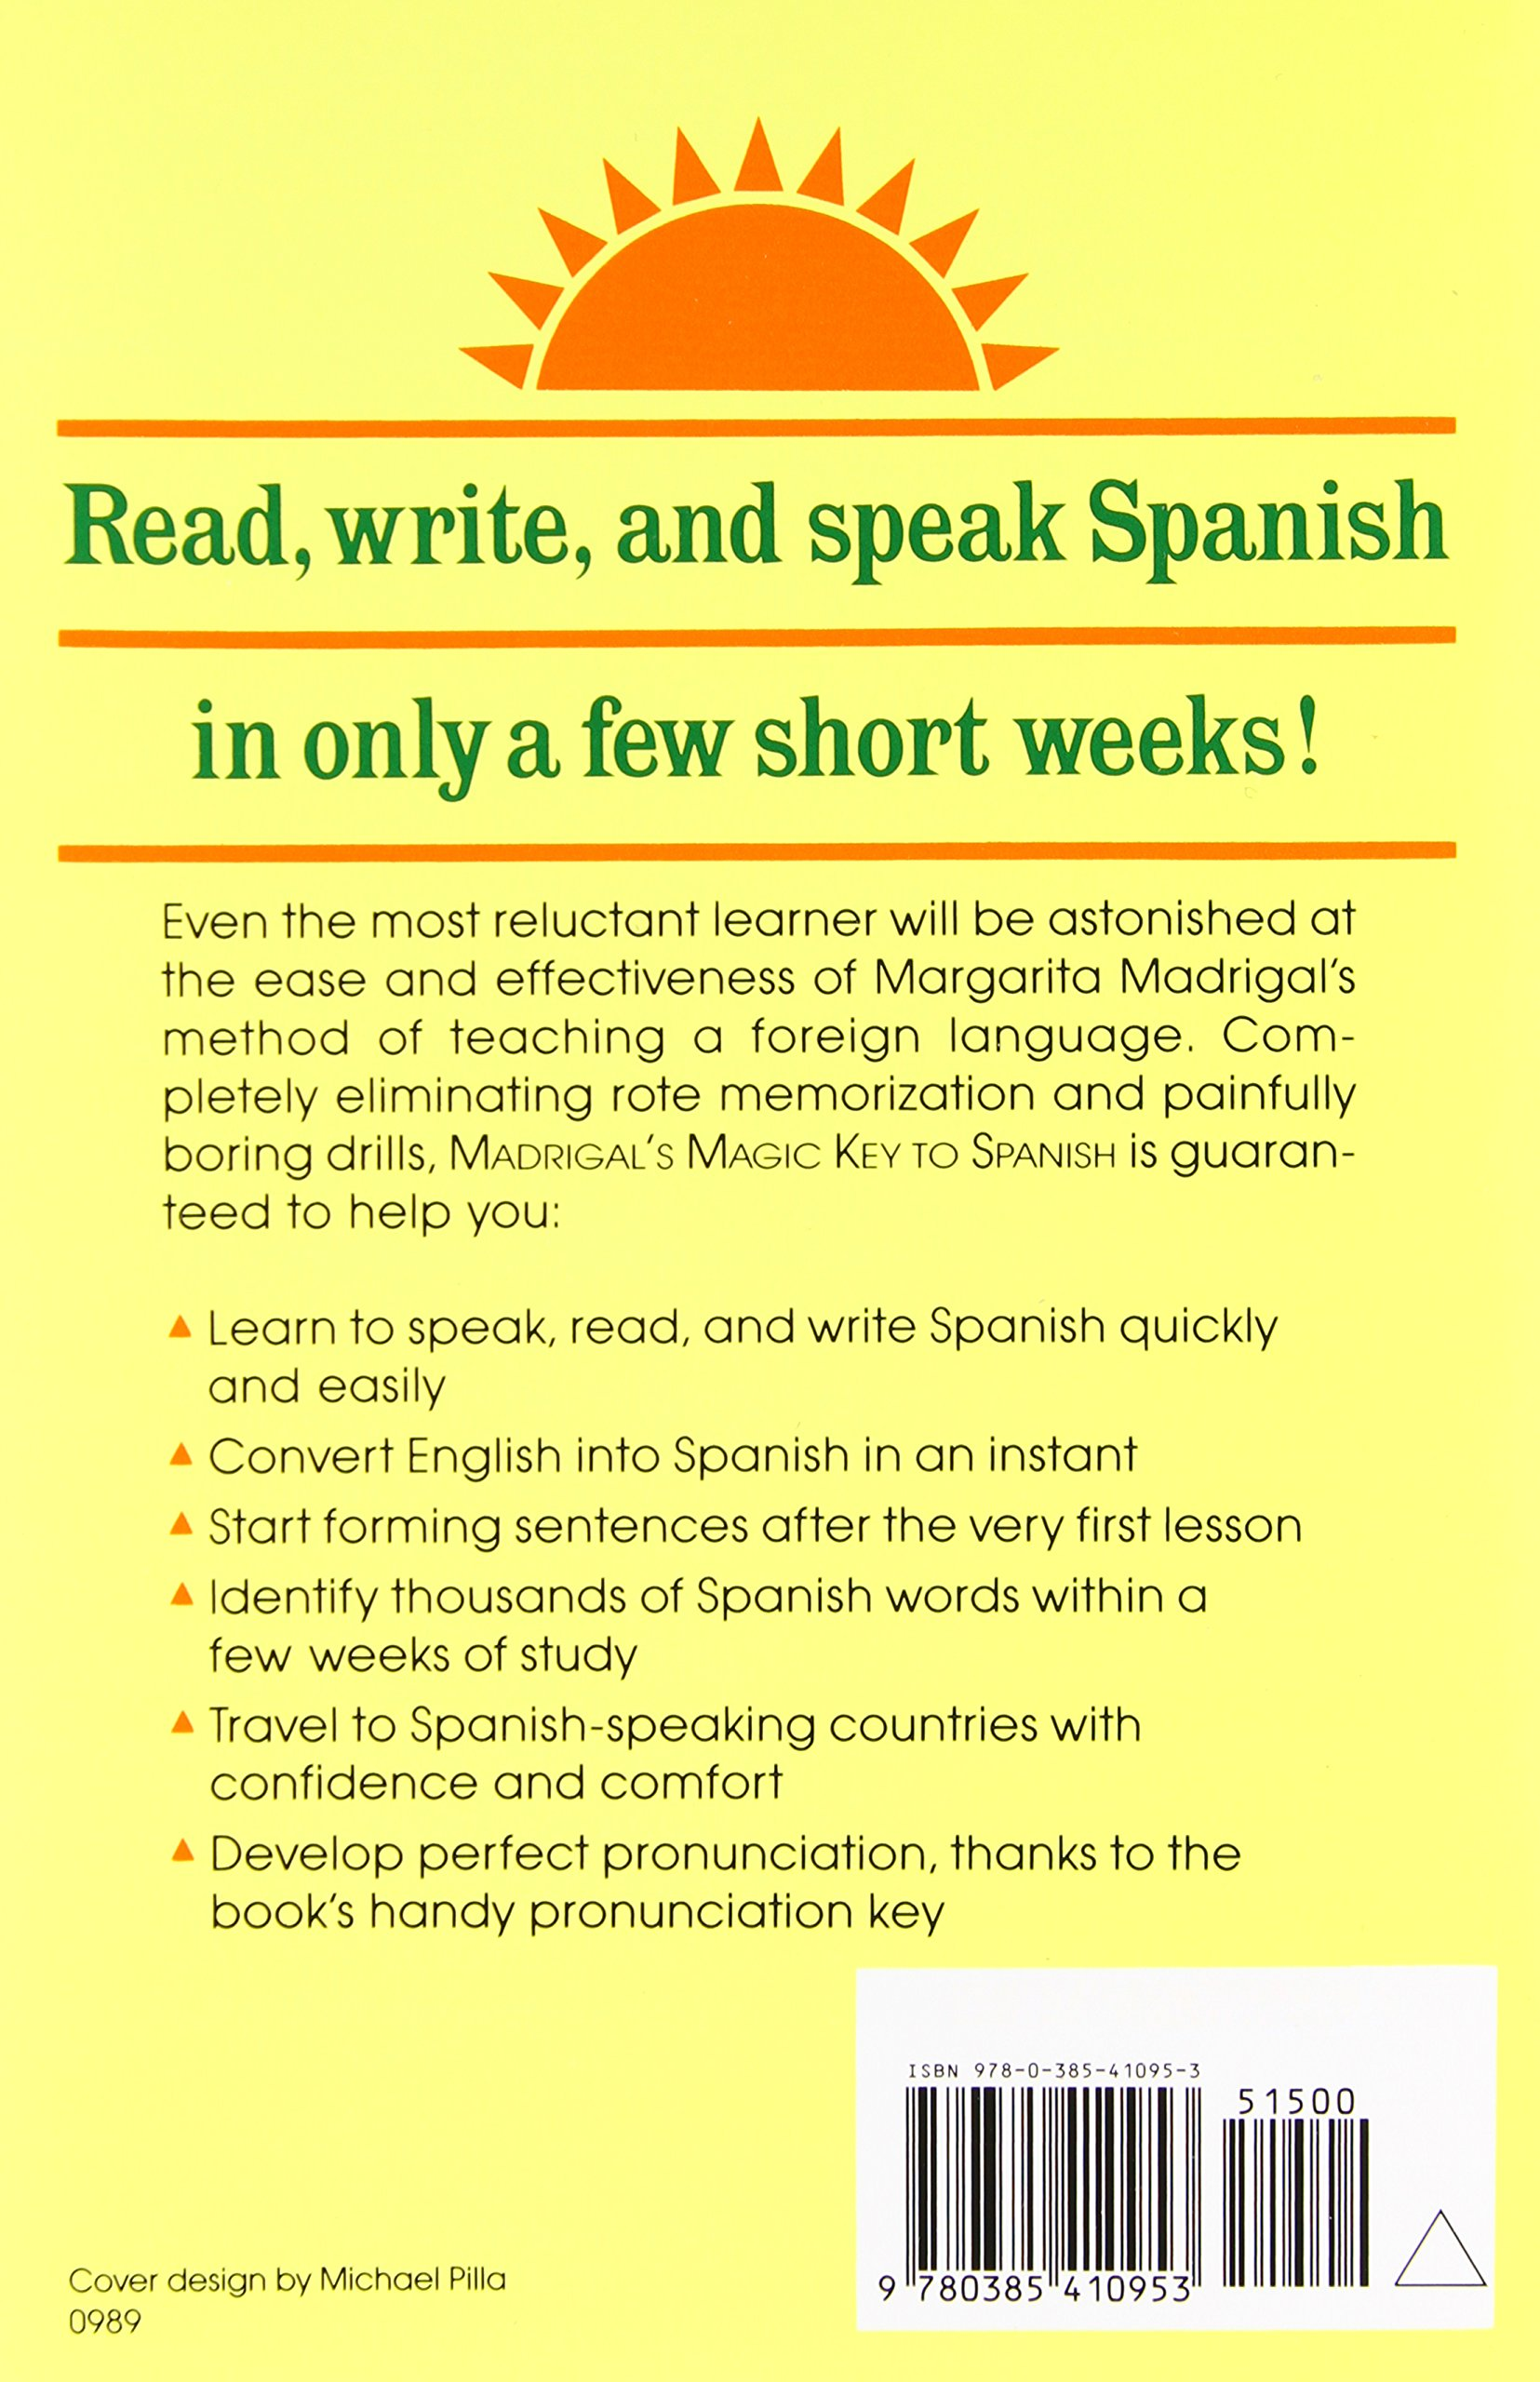 madrigal s magic key to spanish a creative and proven approach